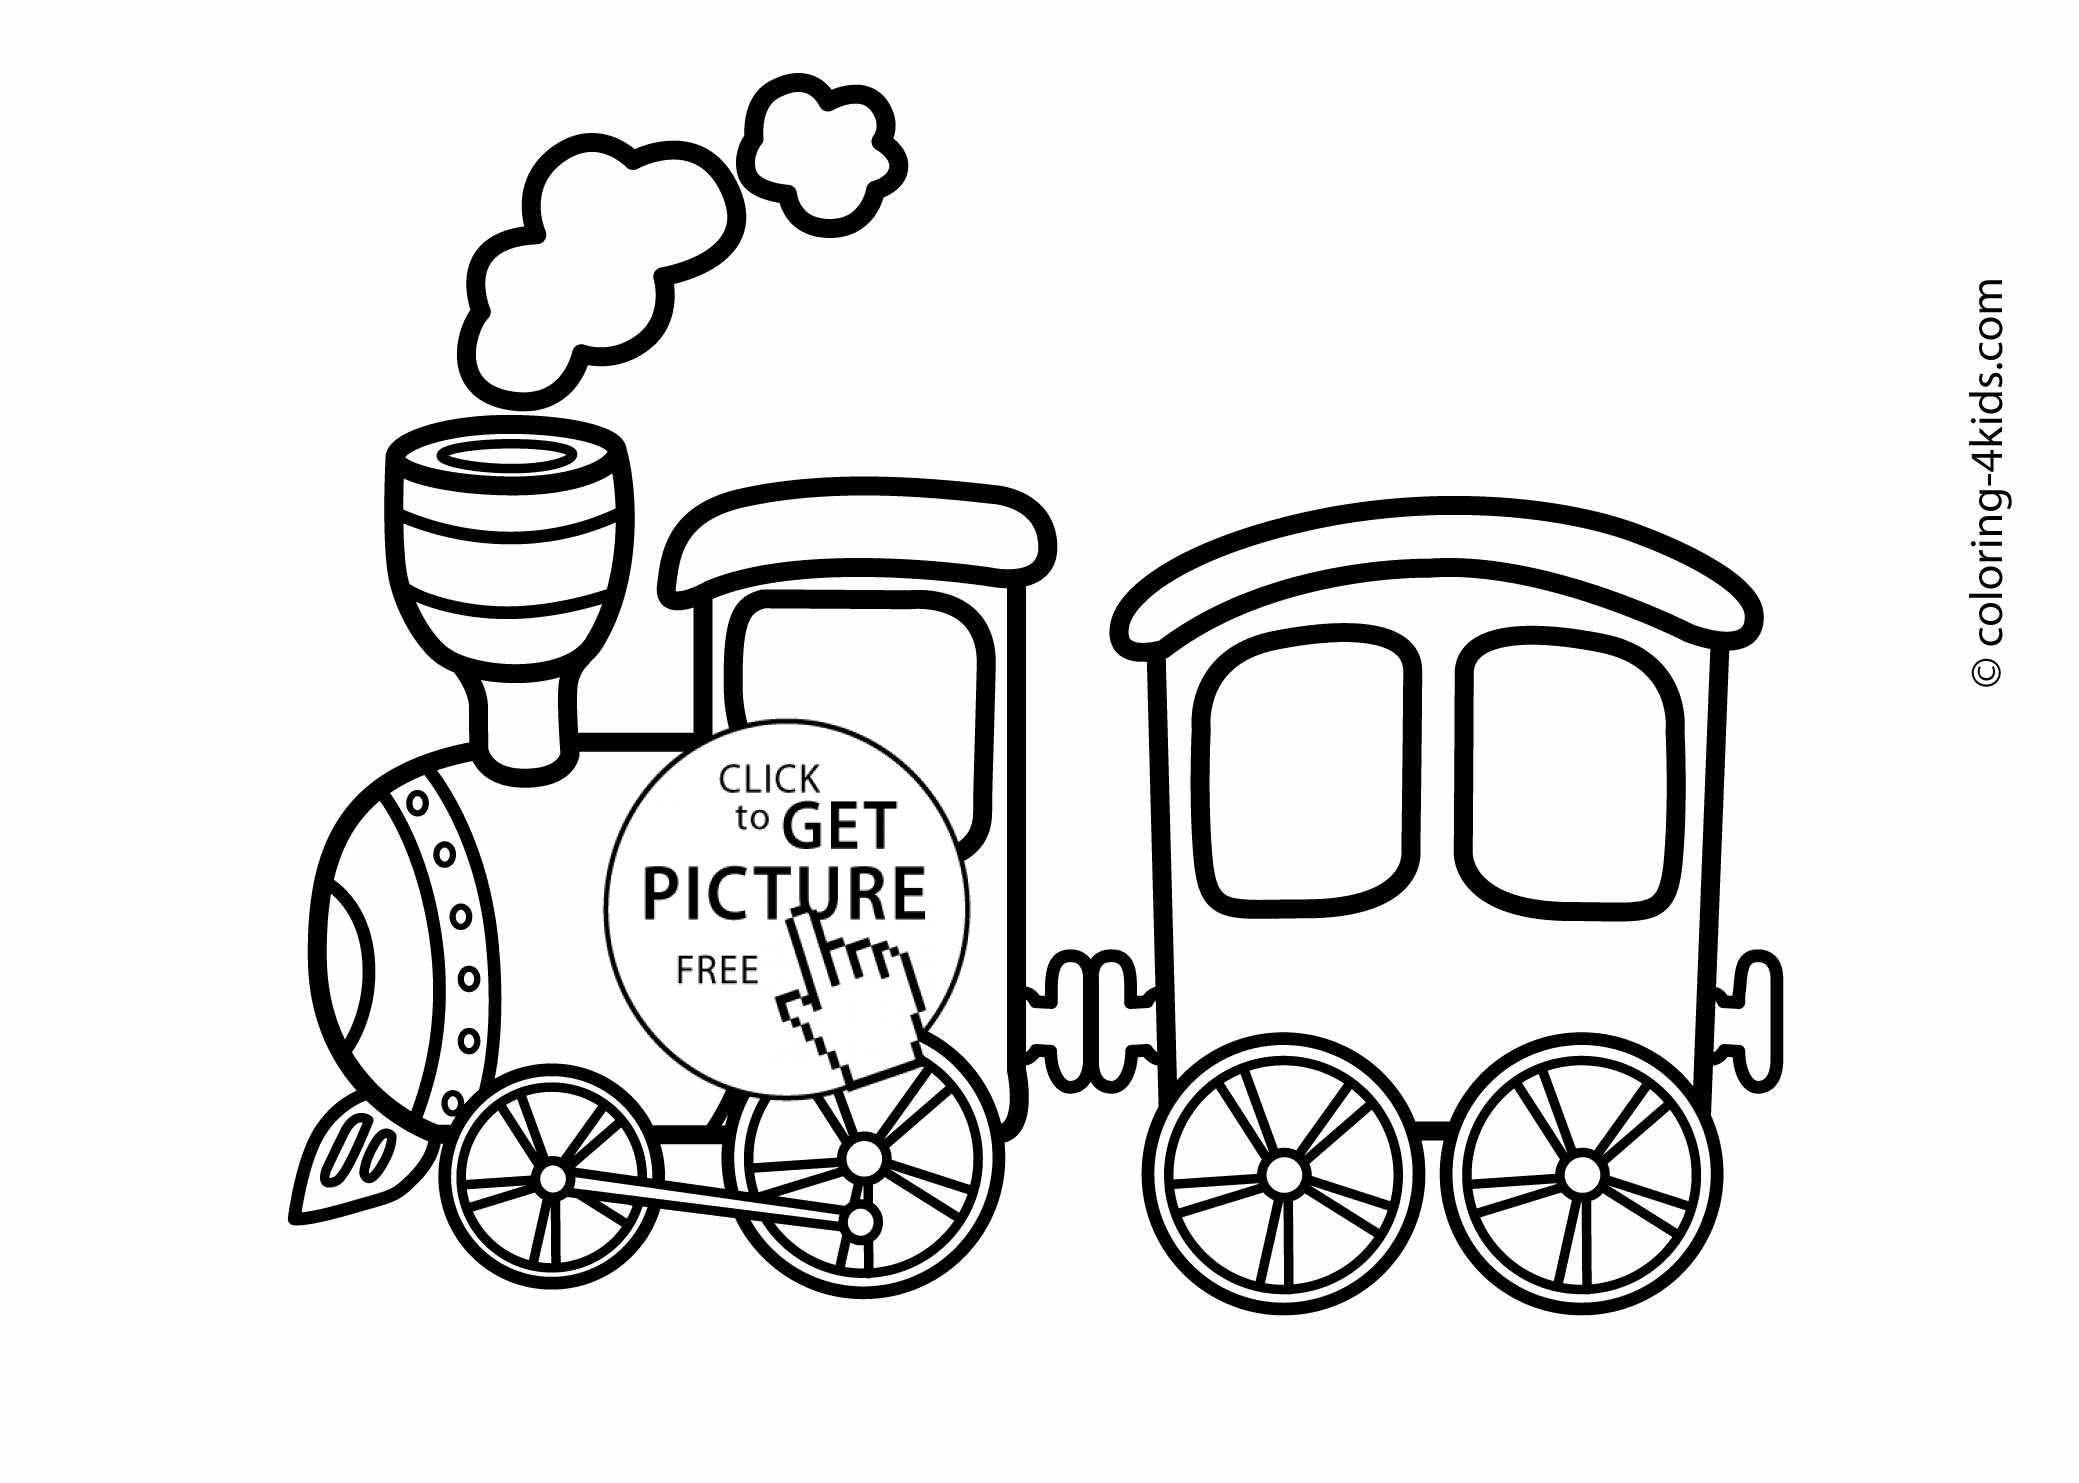 2079x1483 Train Transportation Coloring Pages For Kids, Printable Coloing